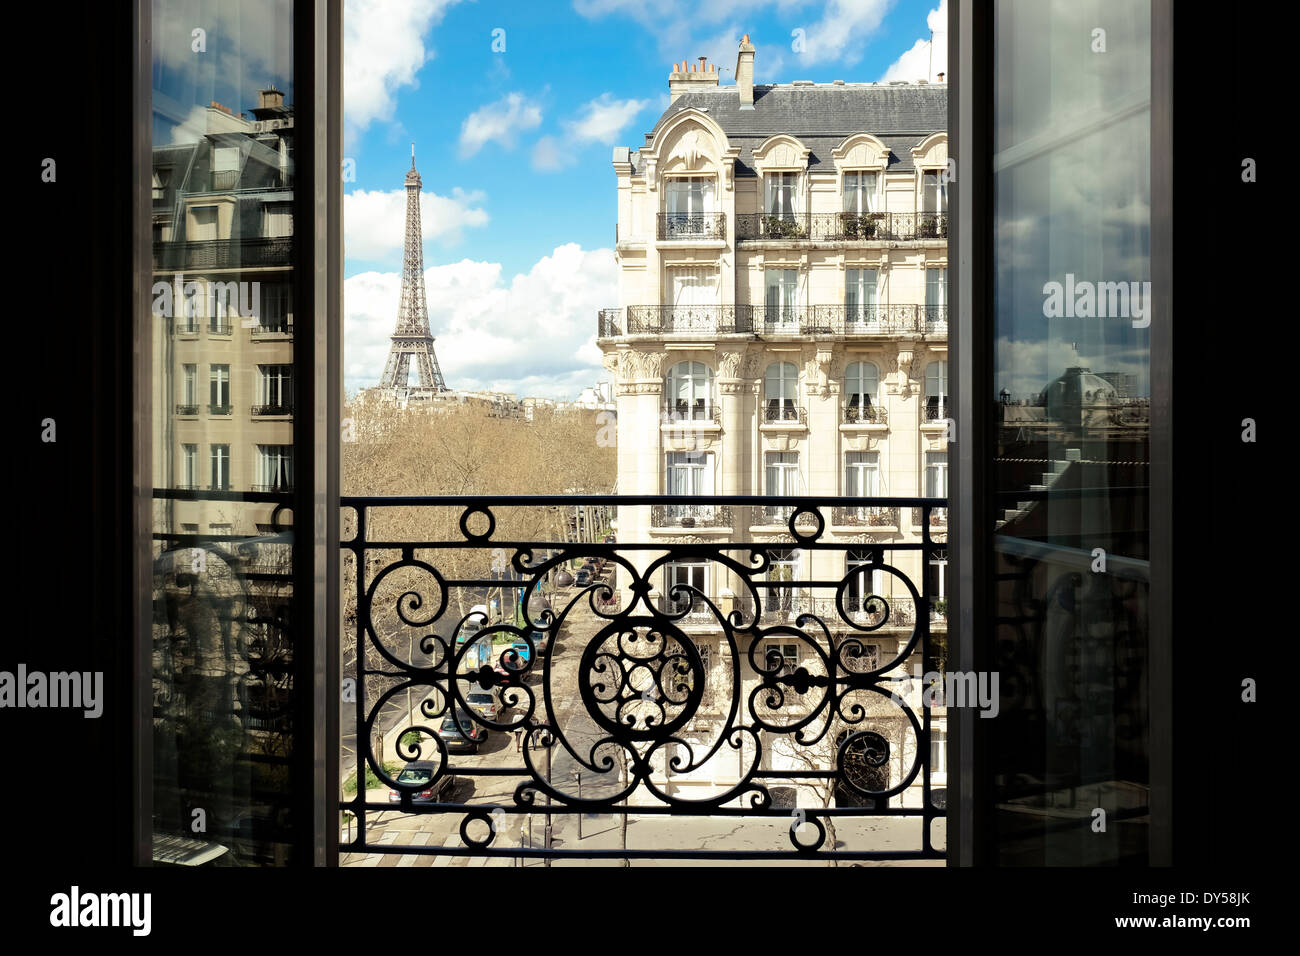 The Eiffel Tower, Paris, France, viewed through an open window. - Stock Image